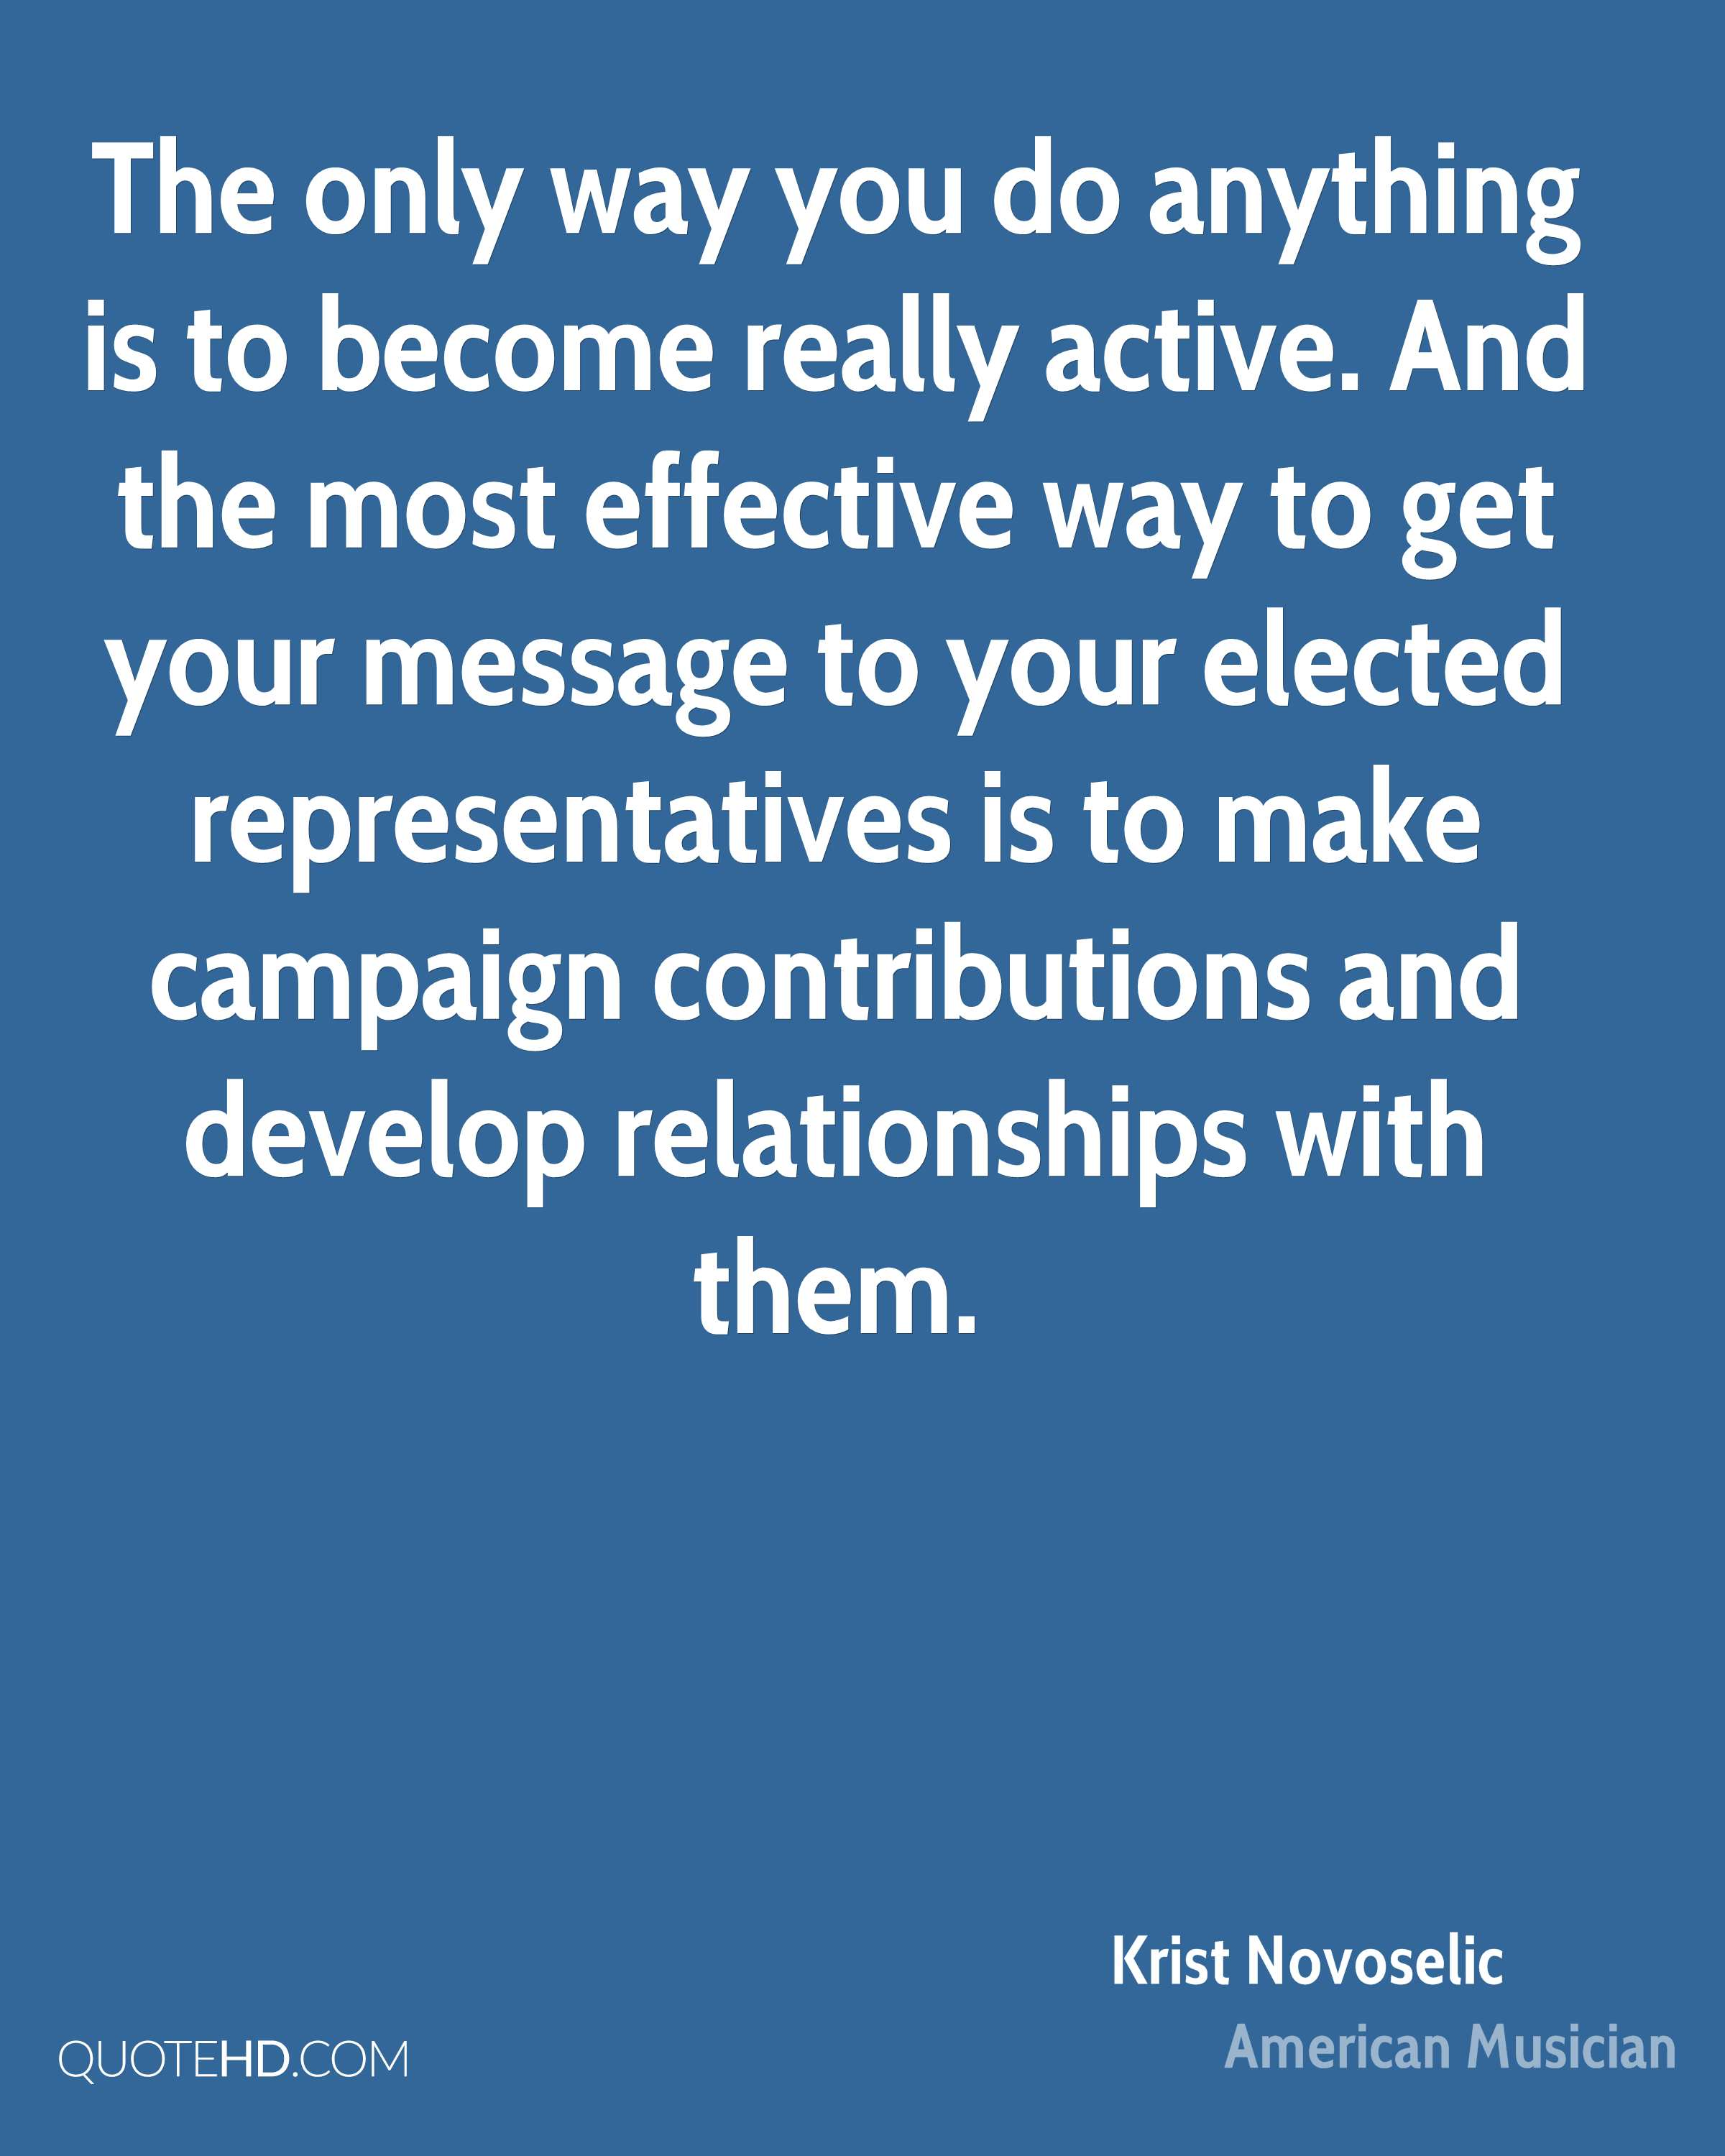 The only way you do anything is to become really active. And the most effective way to get your message to your elected representatives is to make campaign contributions and develop relationships with them.